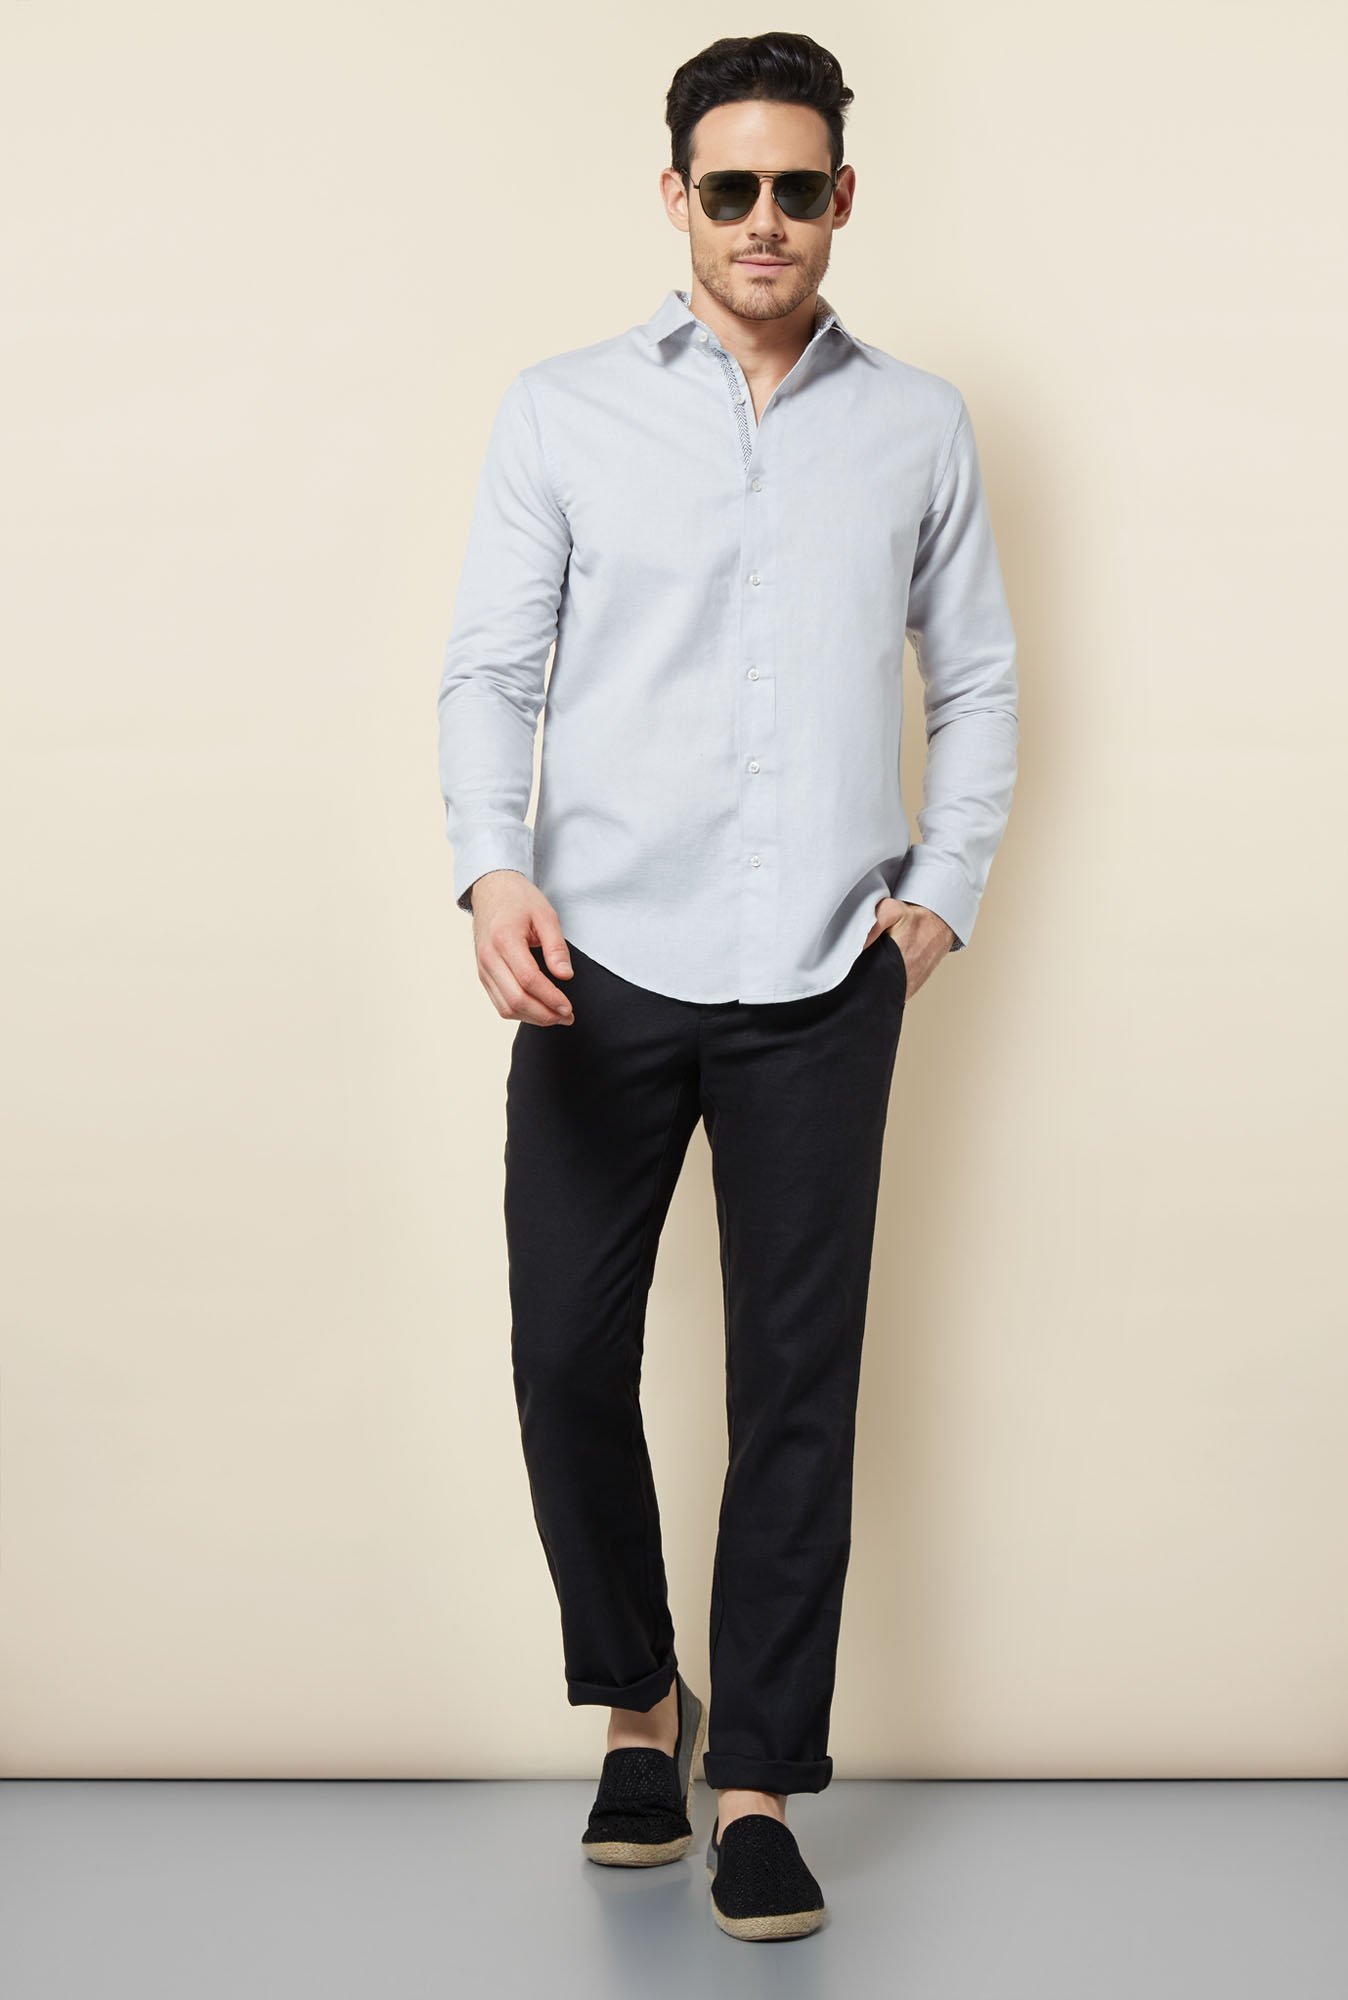 Cottonworld Grey Solid Casual Shirt